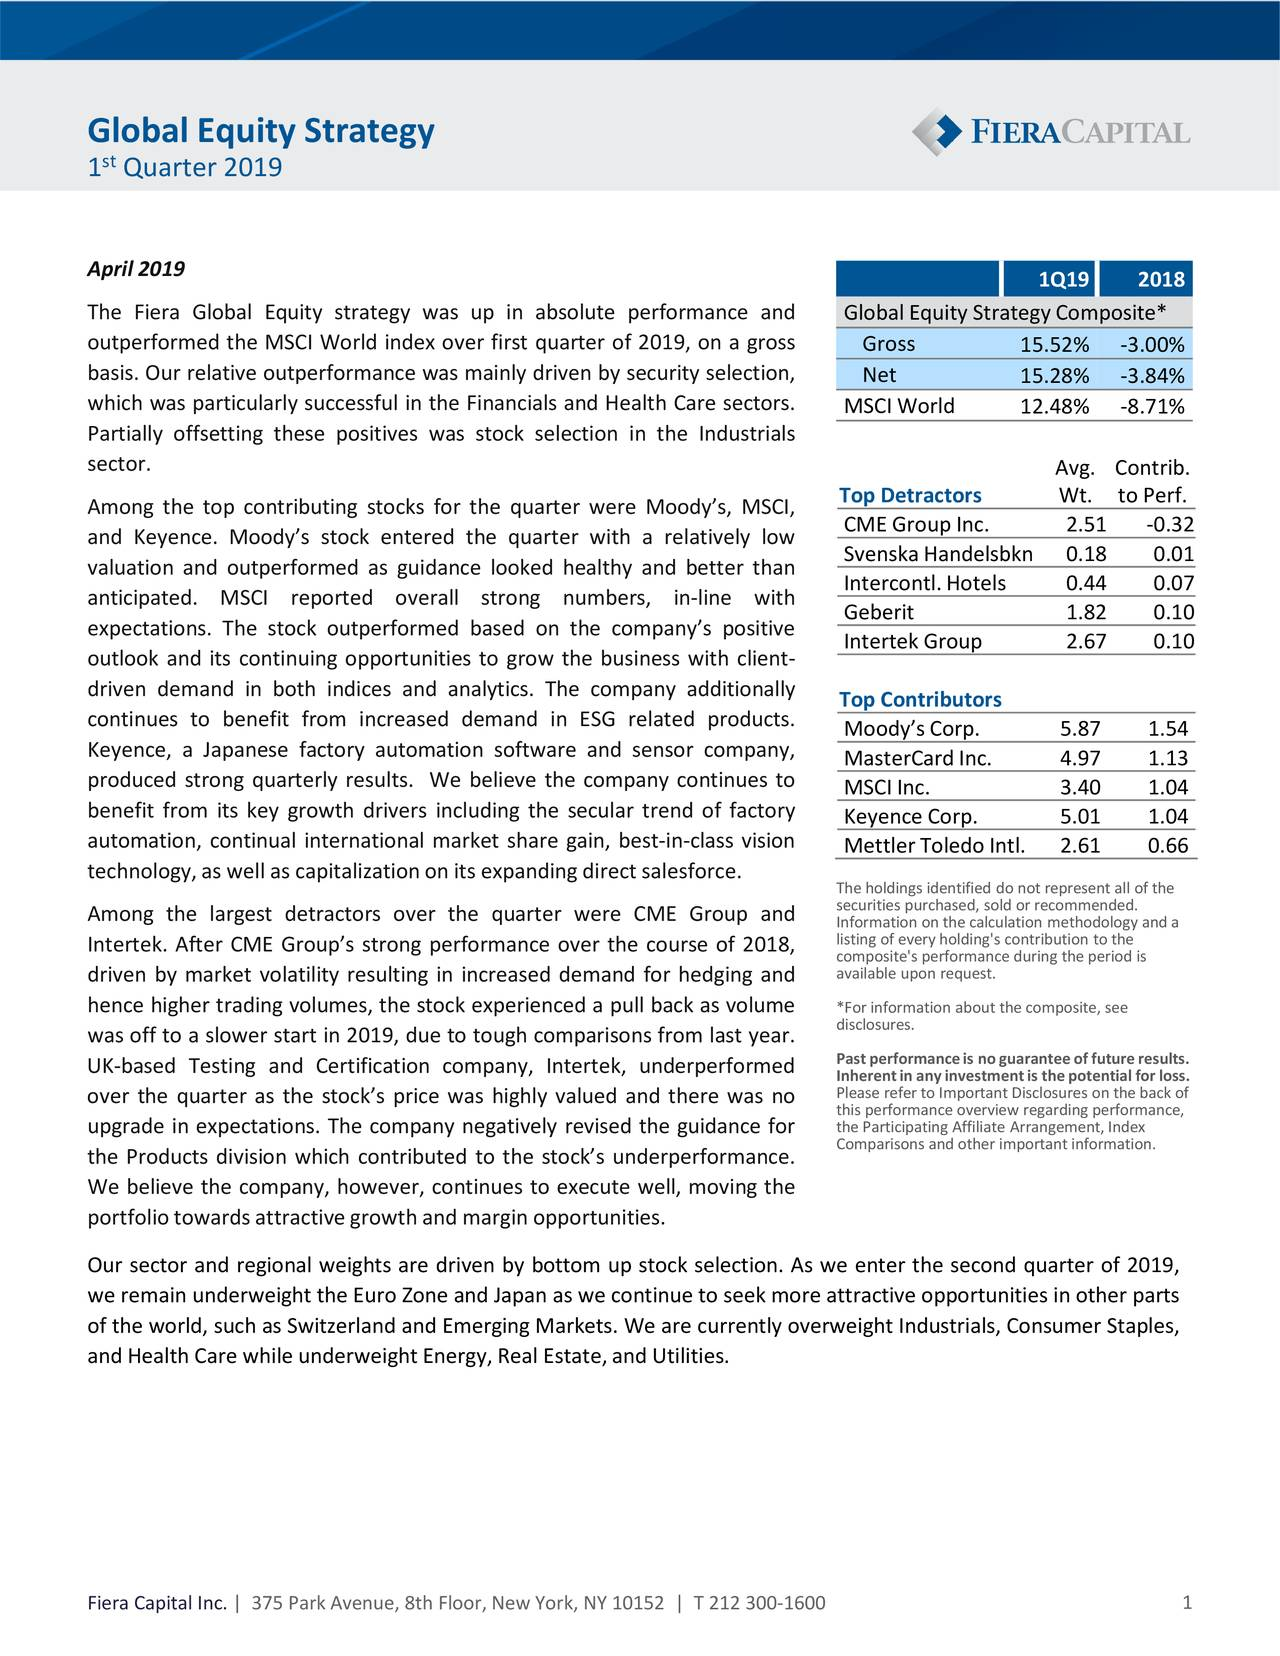 st 1 Quarter 2019 April2019 1Q19 2018 The Fiera Global Equity strategy was up in absolute performance and Global EquityStrategy Composite* outperformed the MSCI World index over first quarter of 2019, on a gross Gross 15.52% -3.00% basis. Our relativeoutperformancewas mainly driven by securityselection, Net 15.28% -3.84% which was particularly successful in the Financials and Health Care sectors. MSCIWorld 12.48% -8.71% Partially offsetting these positives was stock selection in the Industrials sector. Avg. Contrib. Top Detractors Wt. to Perf. Among the top contributing stocks for the quarter were Moody's, MSCI, and Keyence. Moody's stock entered the quarter with a relatively low CME Group Inc. 2.51 -0.32 Svenska Handelsbkn 0.18 0.01 valuation and outperformed as guidance looked healthy and better than Intercontl. Hotels 0.44 0.07 anticipated. MSCI reported overall strong numbers, in-line with expectations. The stock outperformed based on the company's positive Geberit 1.82 0.10 Intertek Group 2.67 0.10 outlook and its continuing opportunities to grow the business with client- driven demand in both indices and analytics. The company additionally continues to benefit from increased demand in ESG related products. Top Contributors Moody's Corp. 5.87 1.54 Keyence, a Japanese factory automation software and sensor company, MasterCard Inc. 4.97 1.13 produced strong quarterly results. We believe the company continues to MSCI Inc. 3.40 1.04 benefit from its key growth drivers including the secular trend of factory Keyence Corp. 5.01 1.04 automation, continual international market share gain, best-in-class vision Mettler Toledo Intl. 2.61 0.66 technology,as well as capitalizationon its expandingdirect salesforce. The holdings identified do not represent all of the Among the largest detractors over the quarter were CME Group and Information on the calculation methodology and a listing of every holding's contribution to the Intertek. After CME Group's strong performance over 